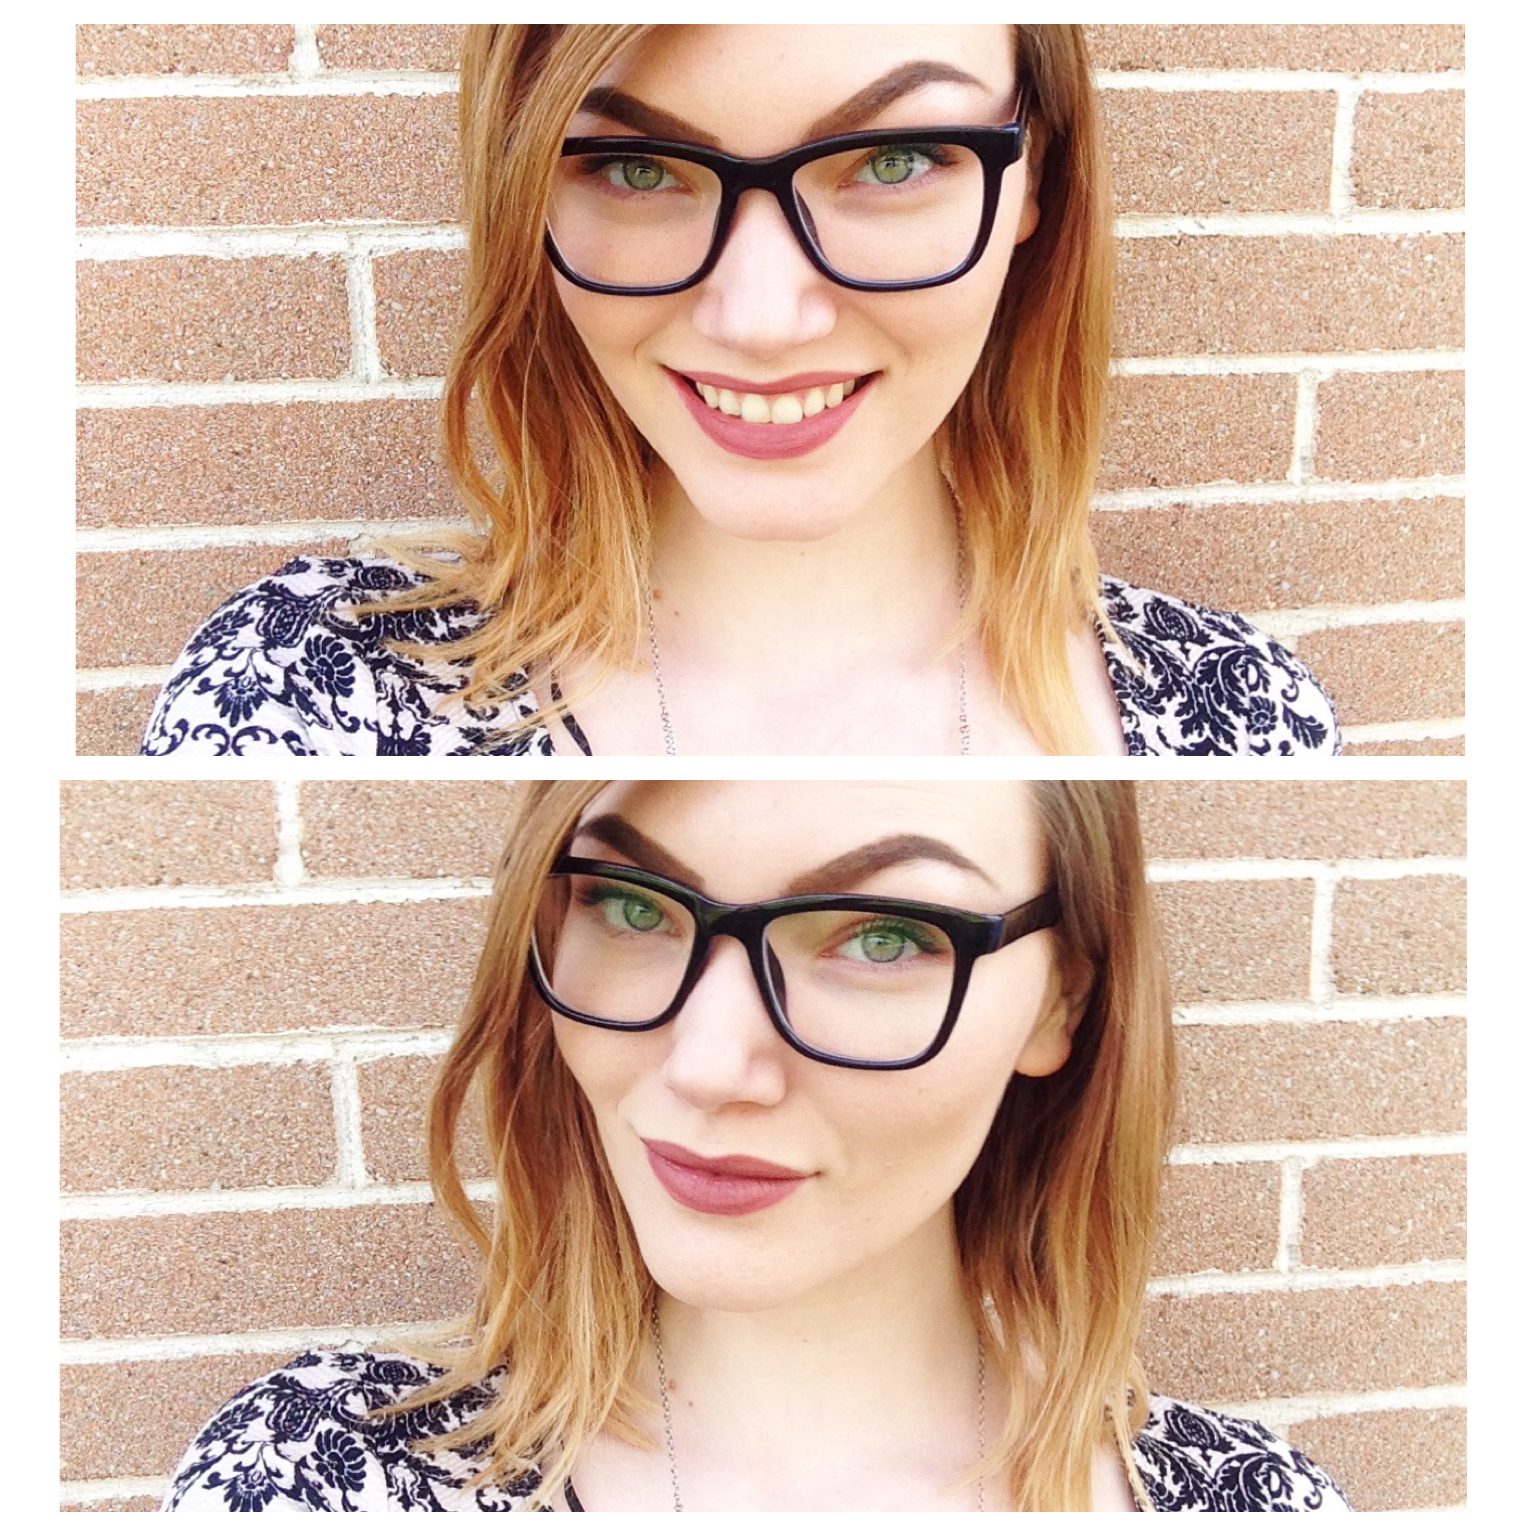 a0a6e9a5394 Another fab  SelectSpecsSelfie from  alyssawngd - check out her  SelectSpecs  review on thewolfandthewardrobe.com